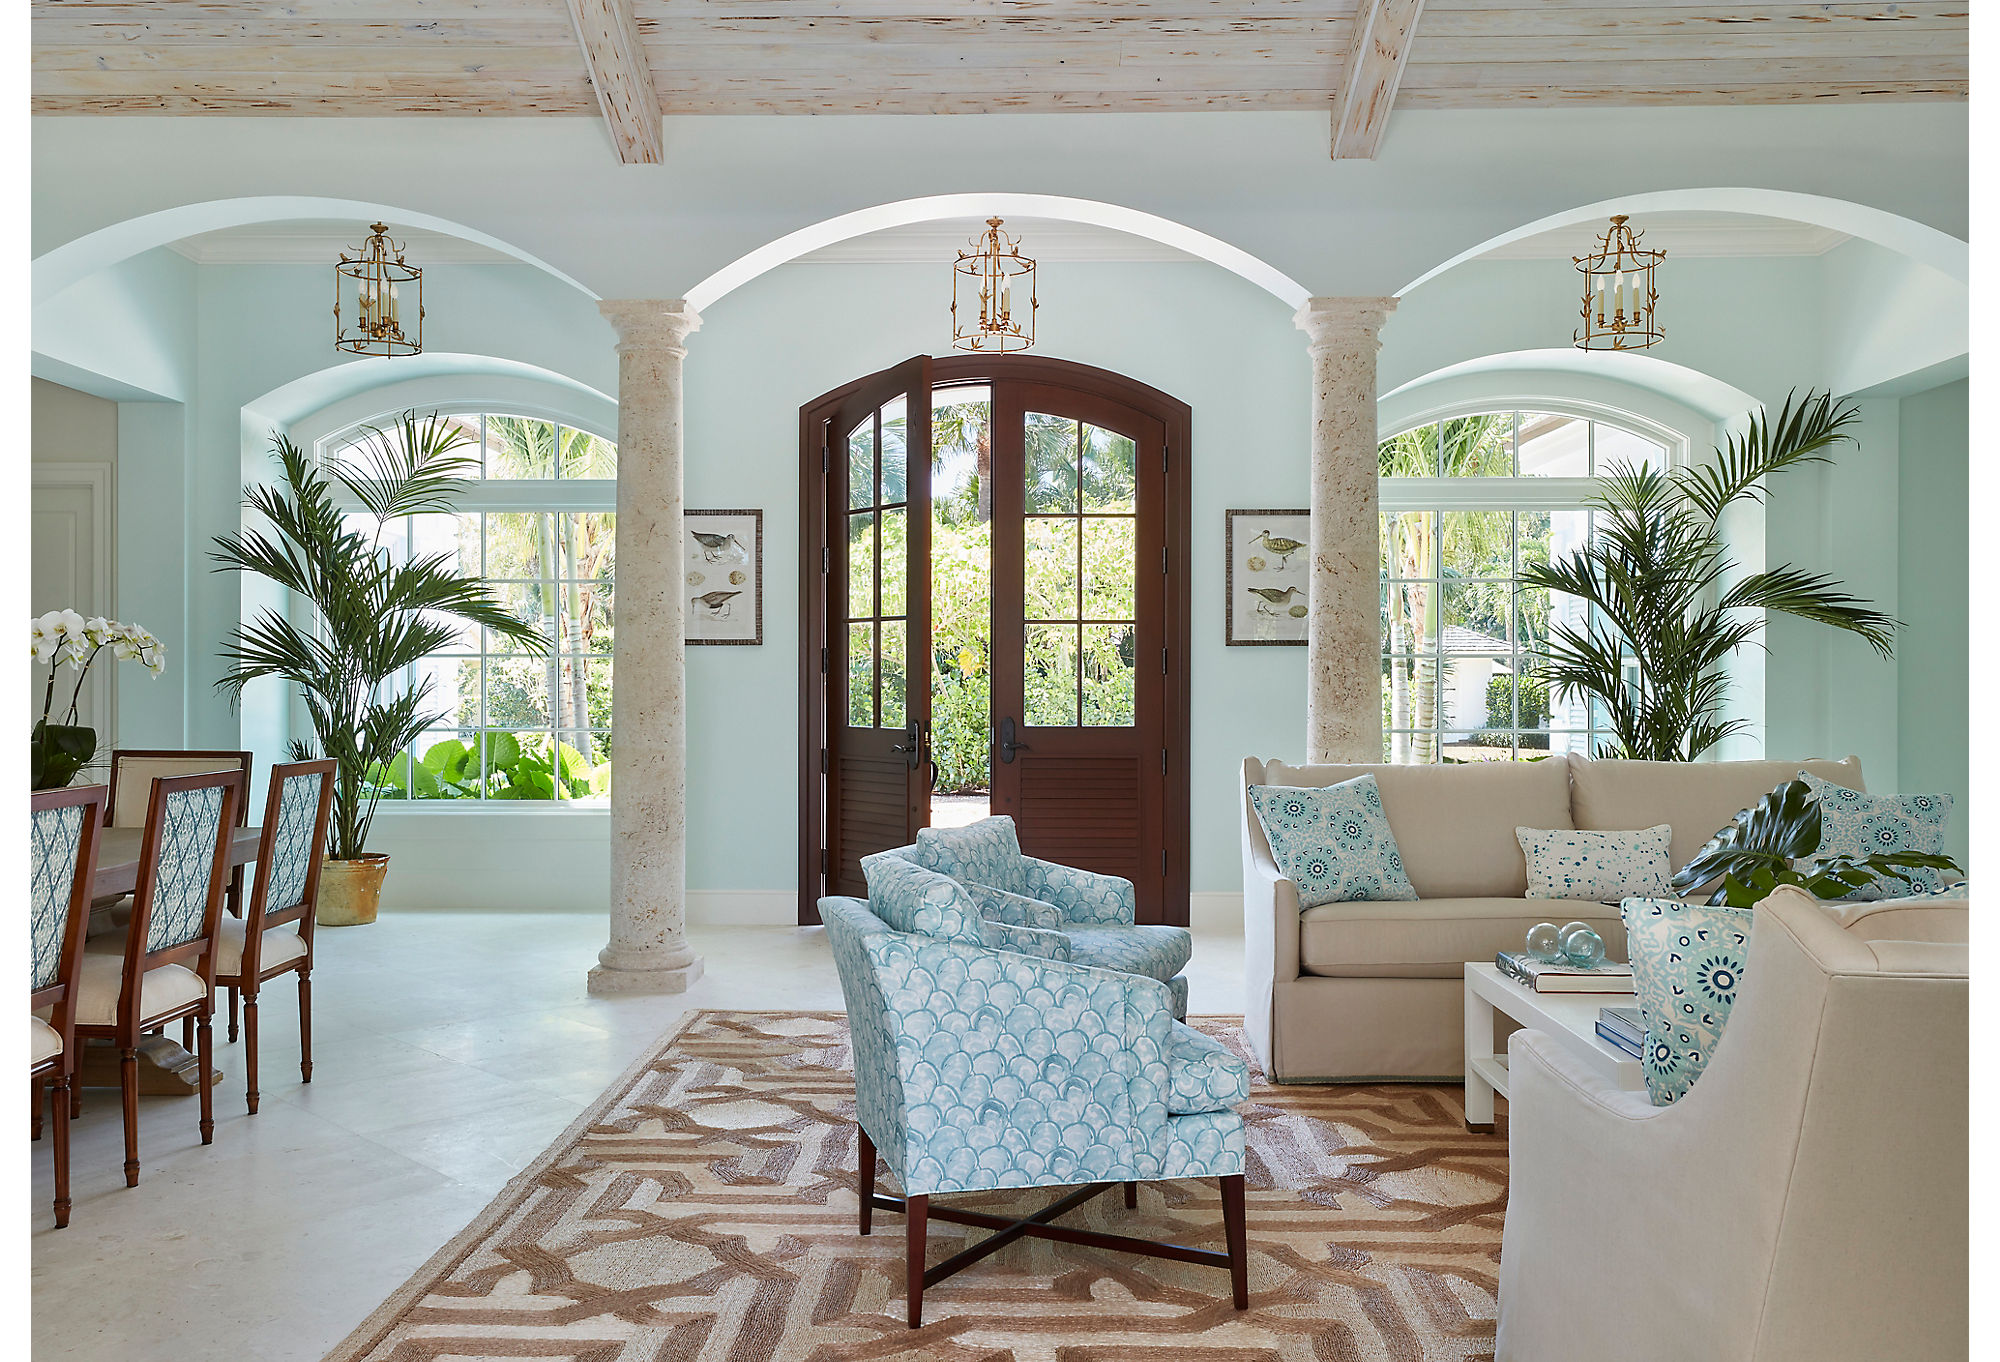 """""""We didn't want the living room to look like new construction,"""" says Caitlin. She set about aging the room with natural elements including coral, pecky cypress, and fibrous rugs."""